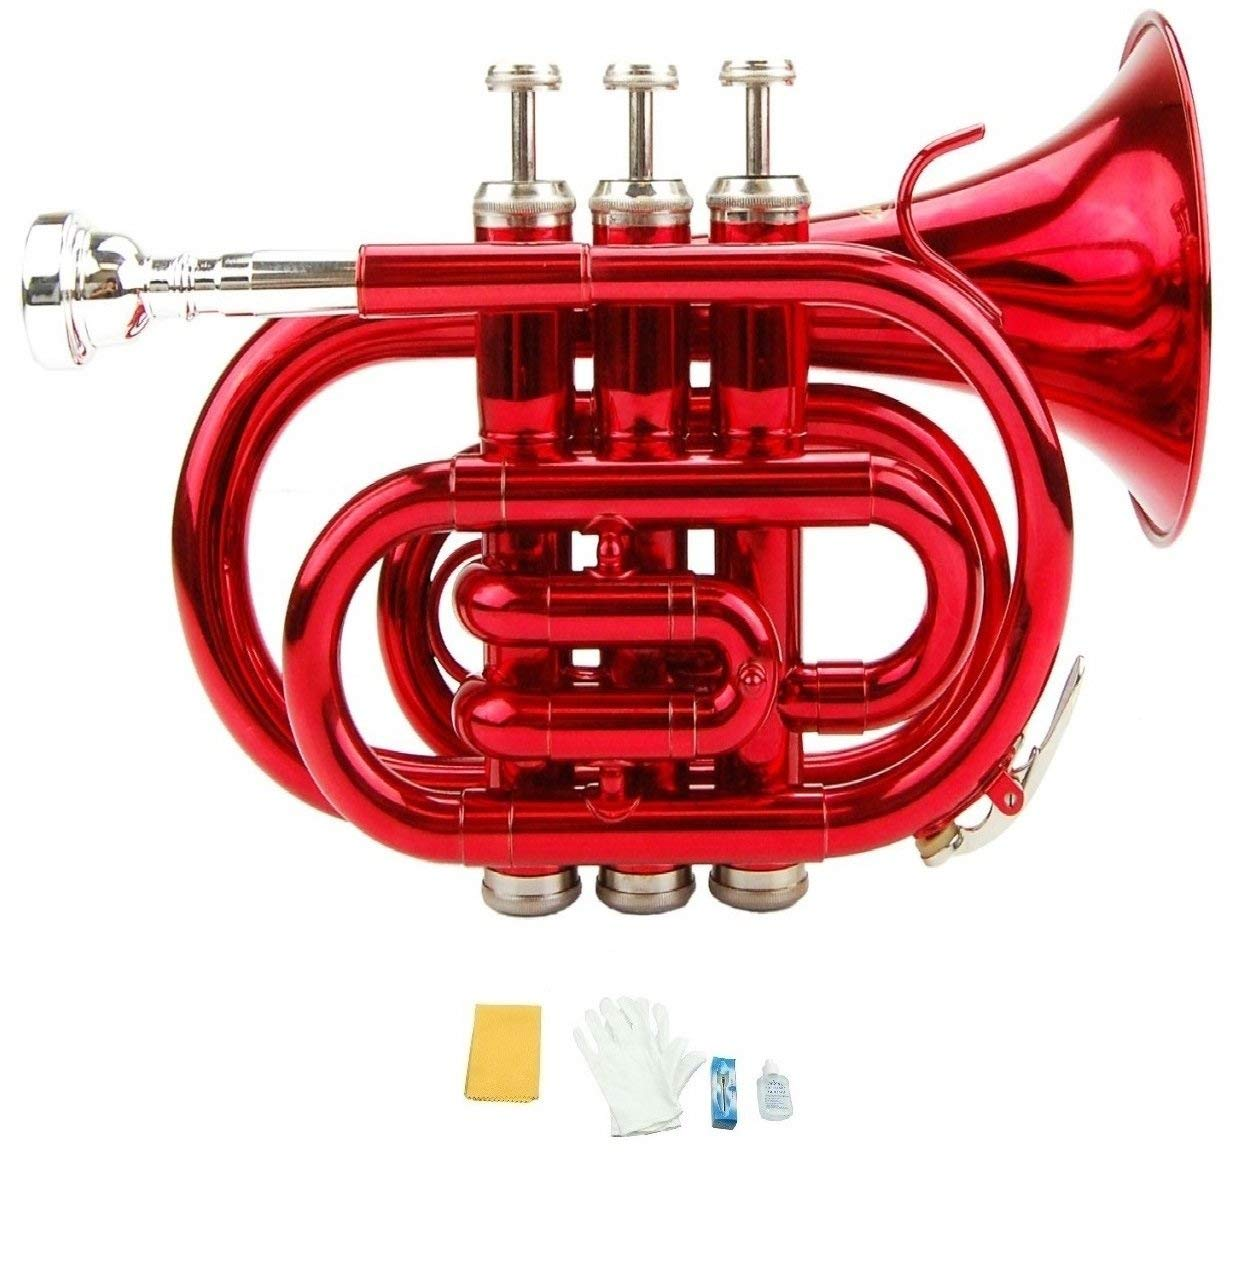 Merano B Flat Red Pocket Trumpet with Case+Mouth Piece;Valve oil;A Pair Of Gloves;Soft Cleaning Cloth by Merano